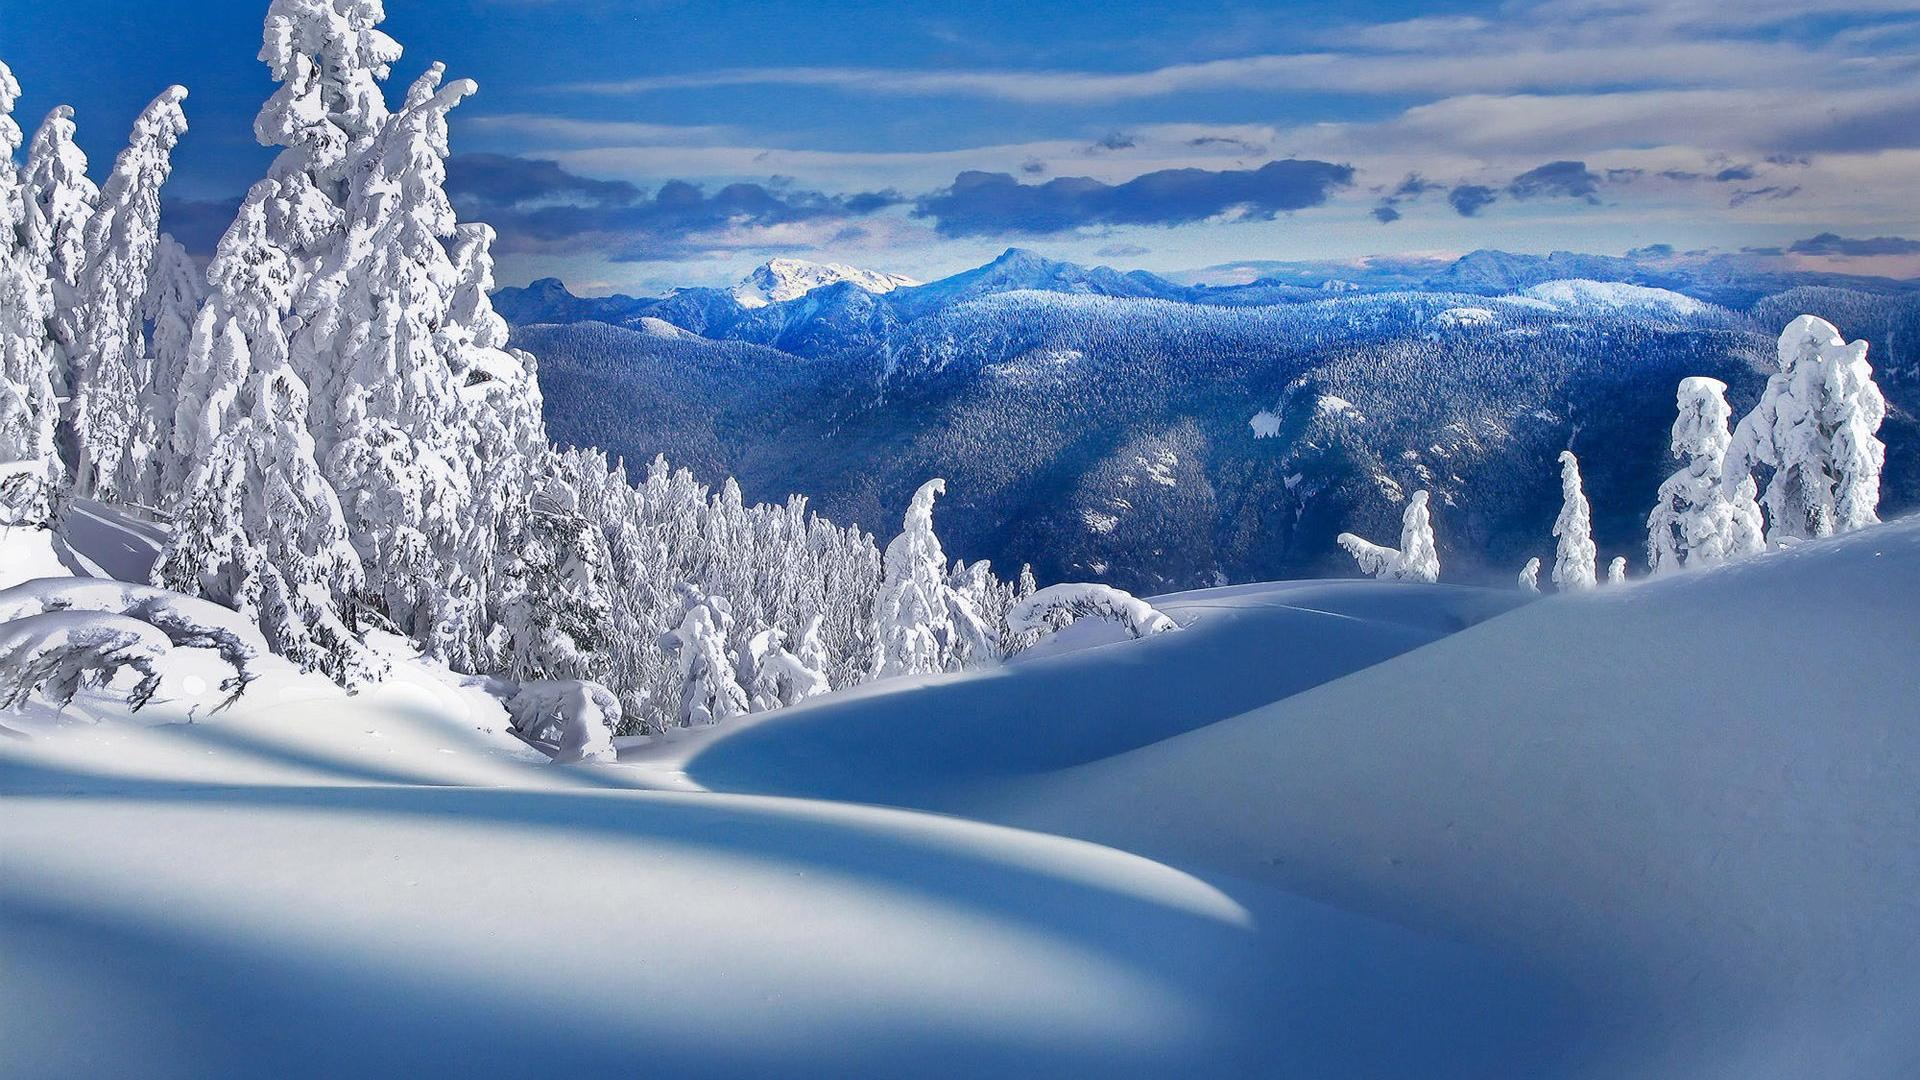 snow hd wallpaper - wallpaper, high definition, high quality, widescreen